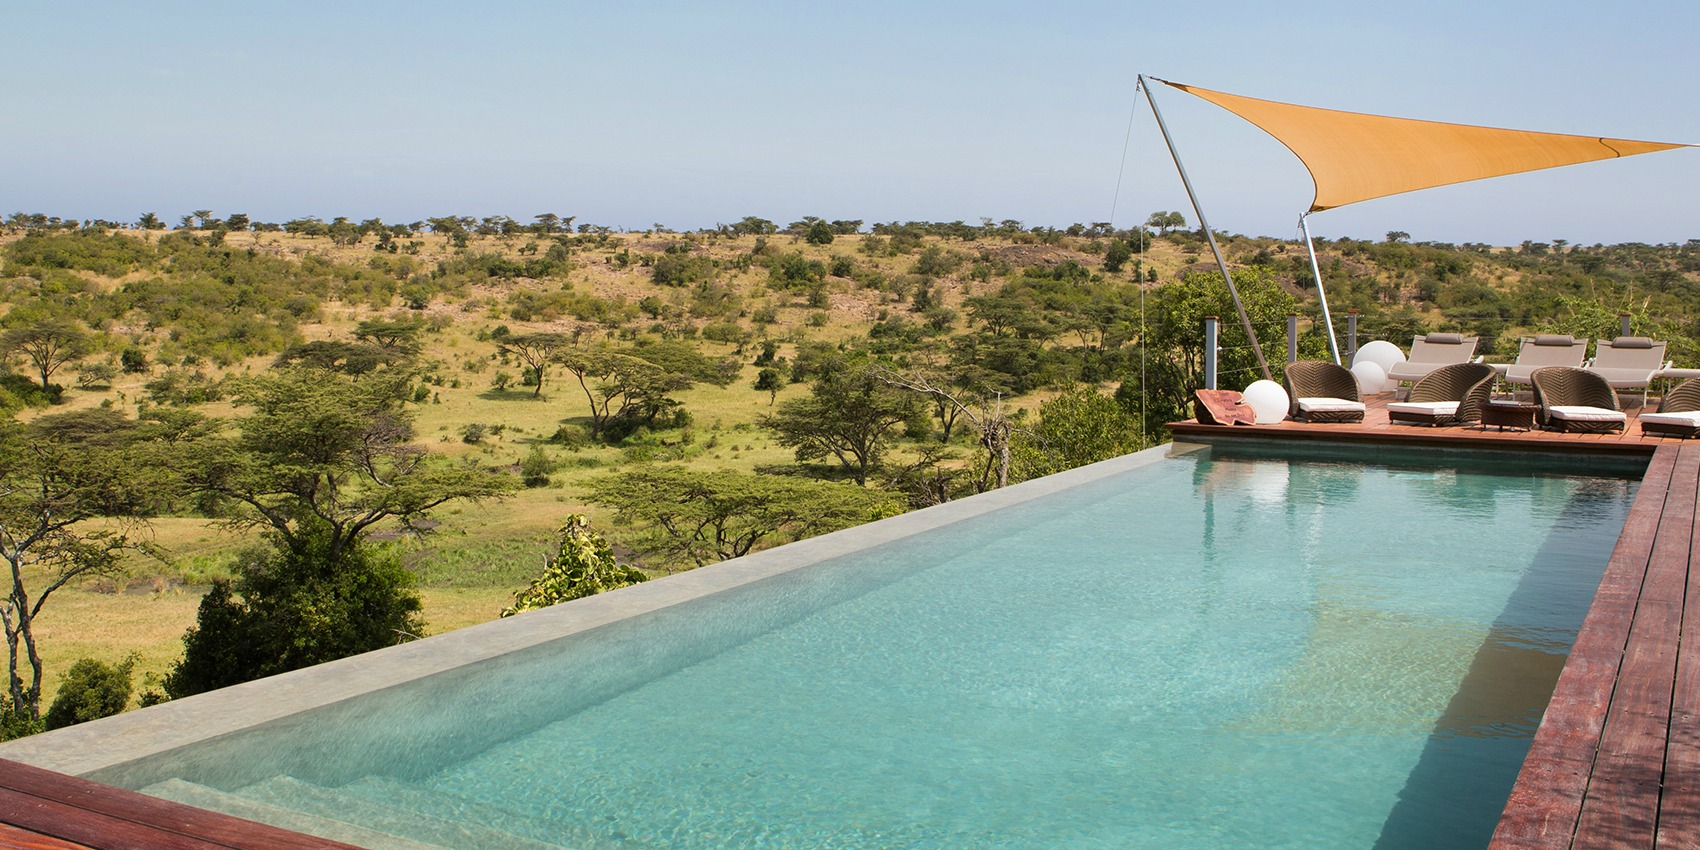 Infinity Pool in the African Bush